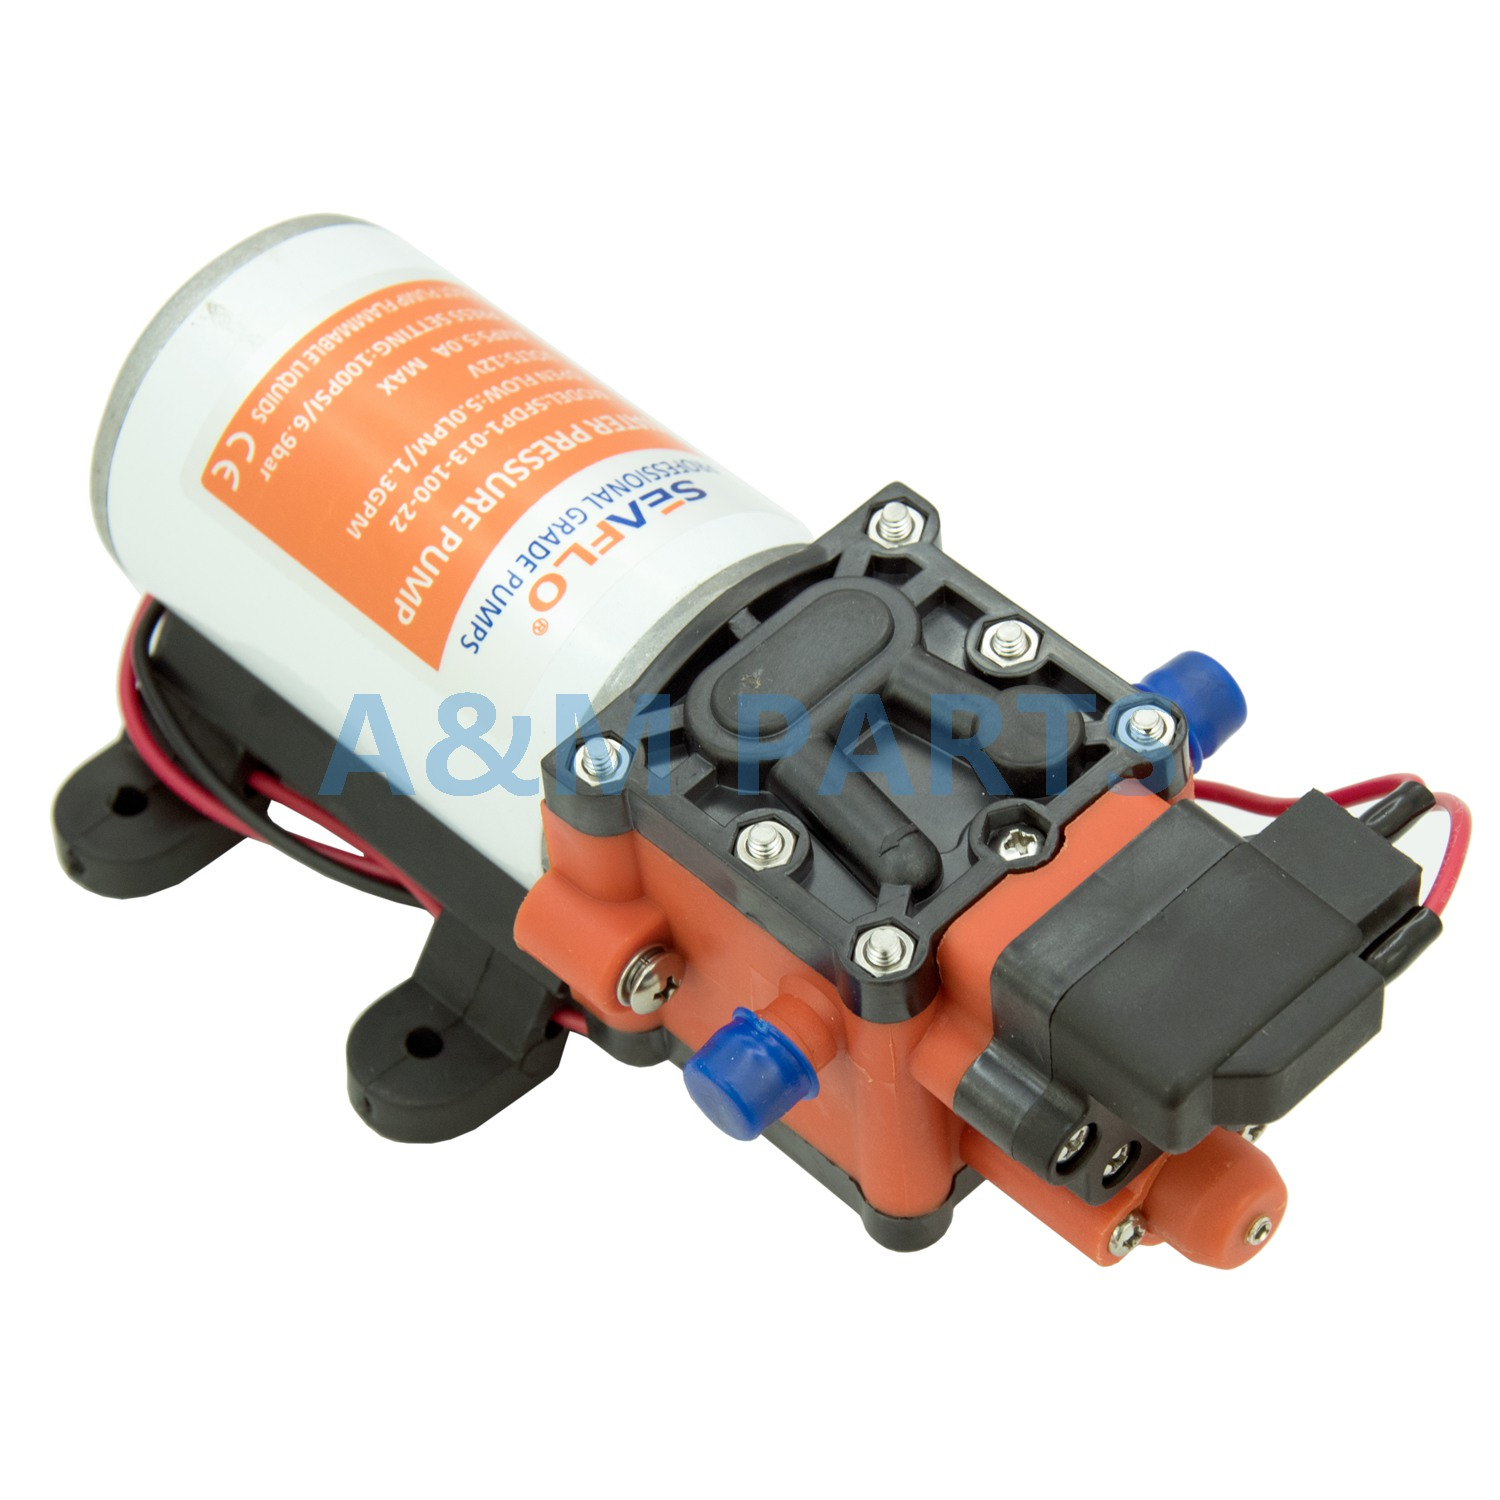 12V 100 PSI 1.3 GPM Diaphragm Pump Boat Marine RV Self Priming Water Pump 12v 60psi 1 3 gpm diaphragm pump boat rv water pressure self priming pump